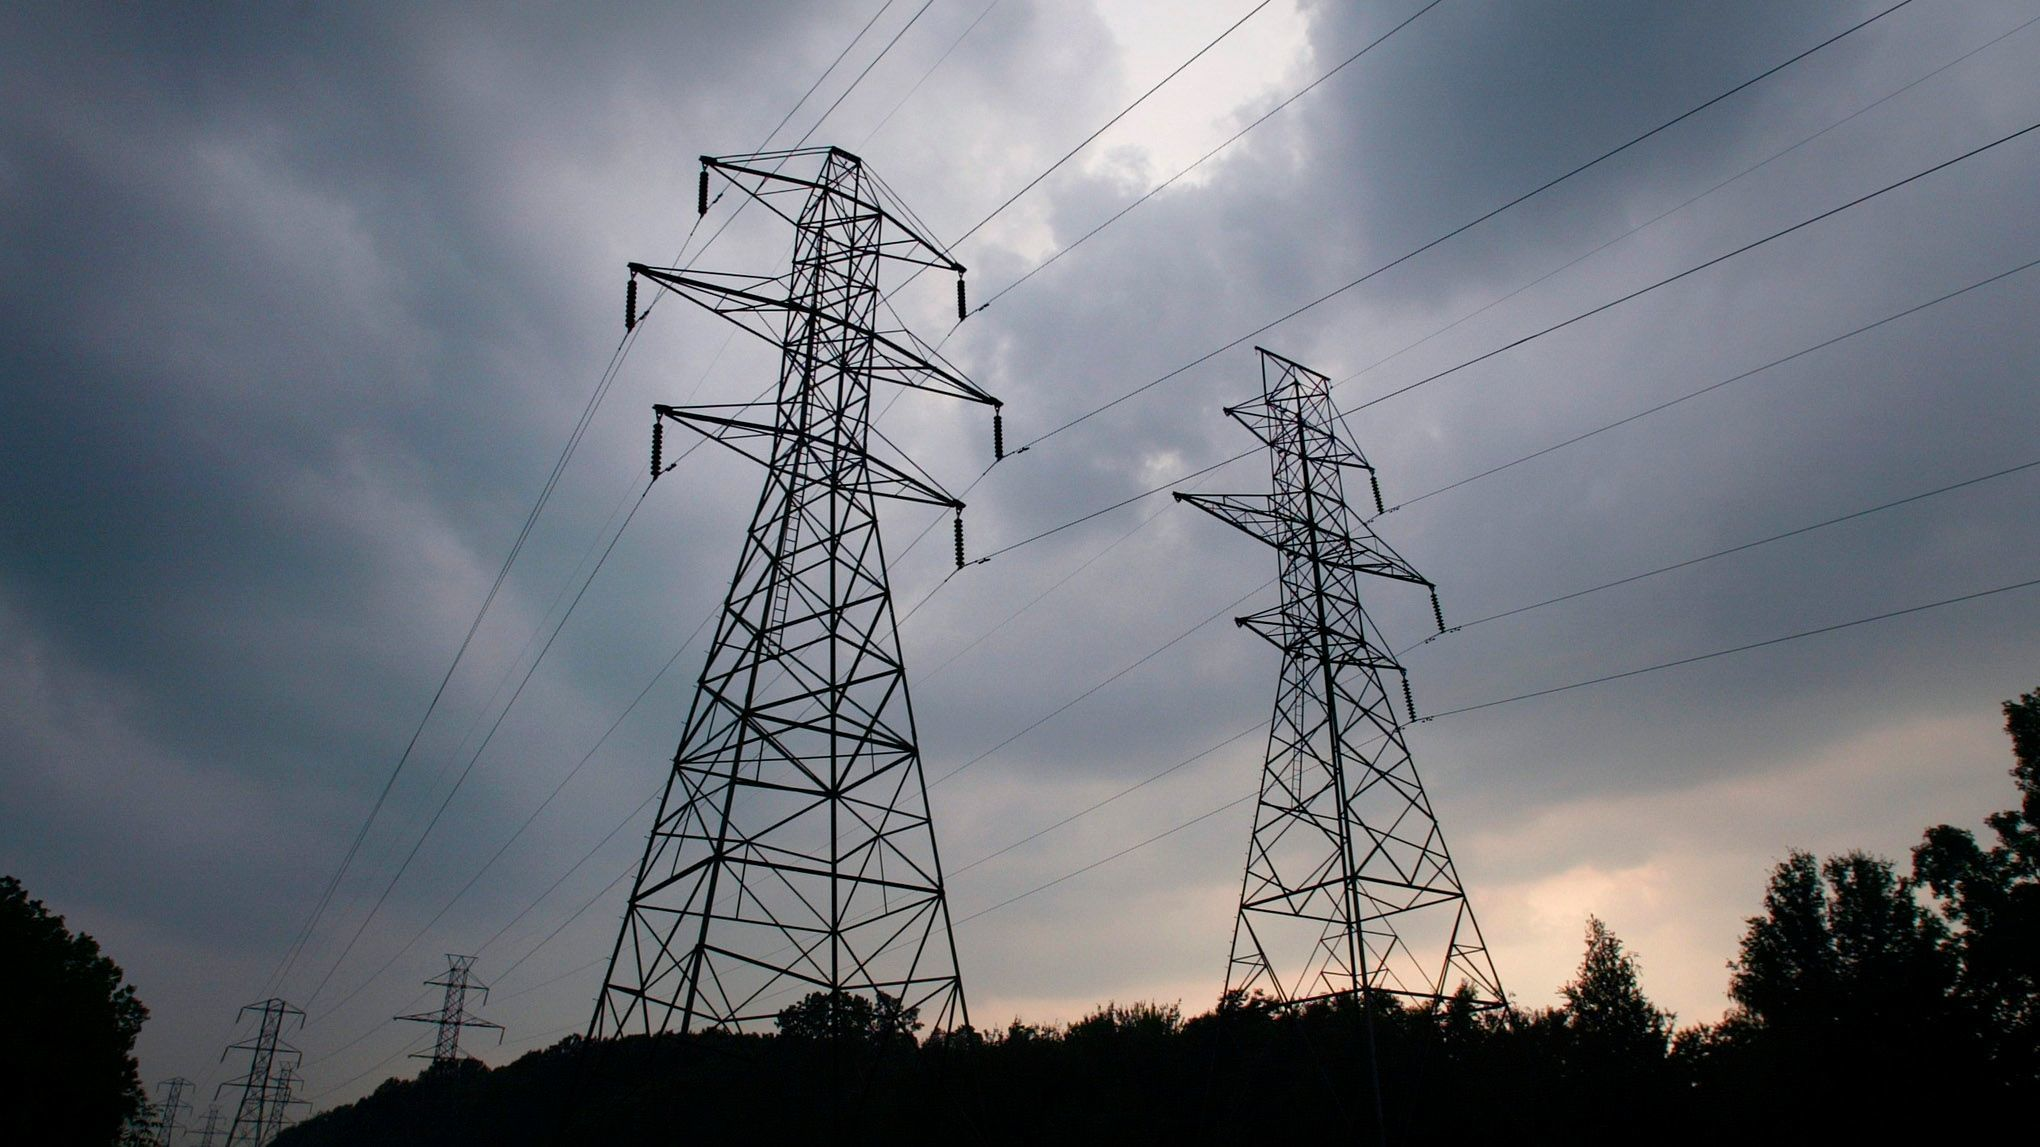 An analysis bythe University of Cambridgeand the insurer Lloyd's estimated that a substantialoffensive against the power grid in the northeastern U.S. could leave 93 million people in the darkand cause upwardof $240 billion in economic damage.